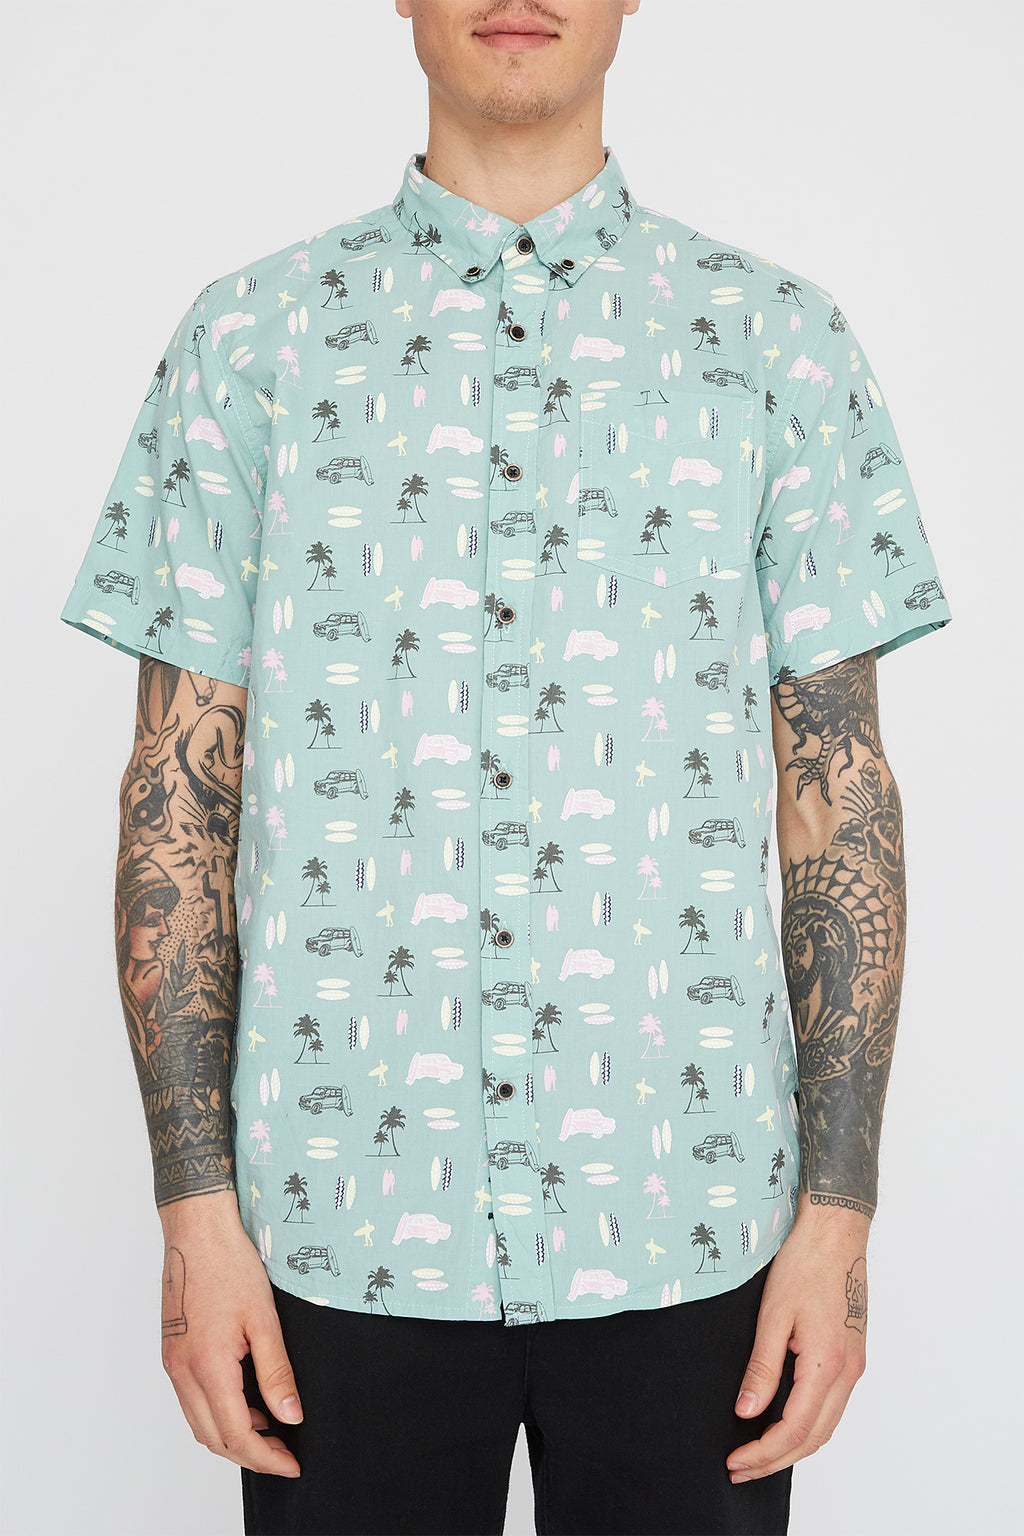 West49 Mens Turquoise Button Up Shirt